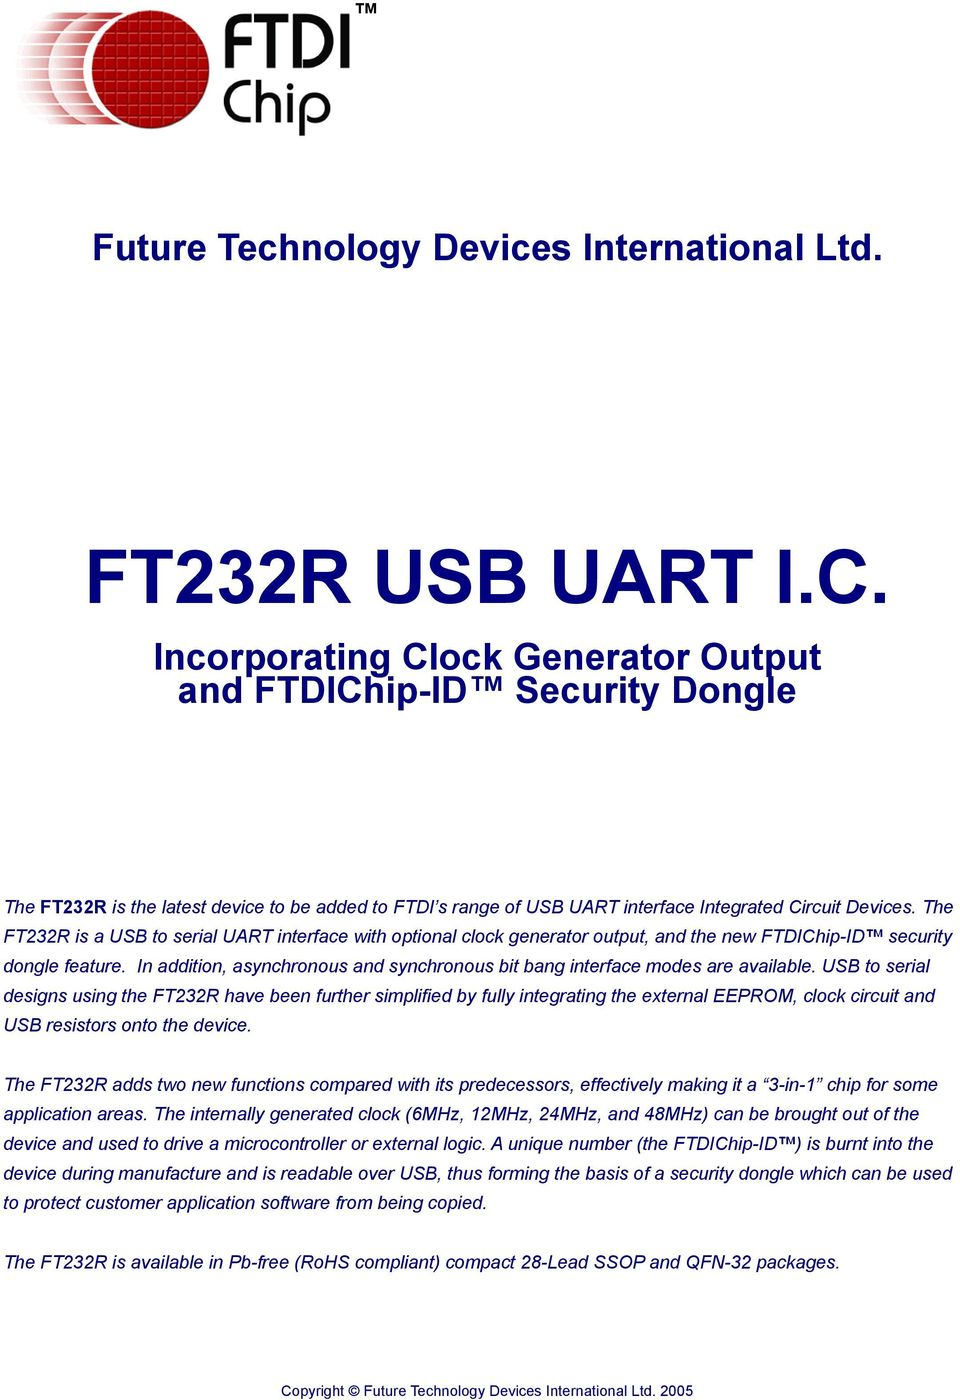 he FR is a USB to serial UAR interface with optional clock generator output, and the new FIChip-I security dongle feature.